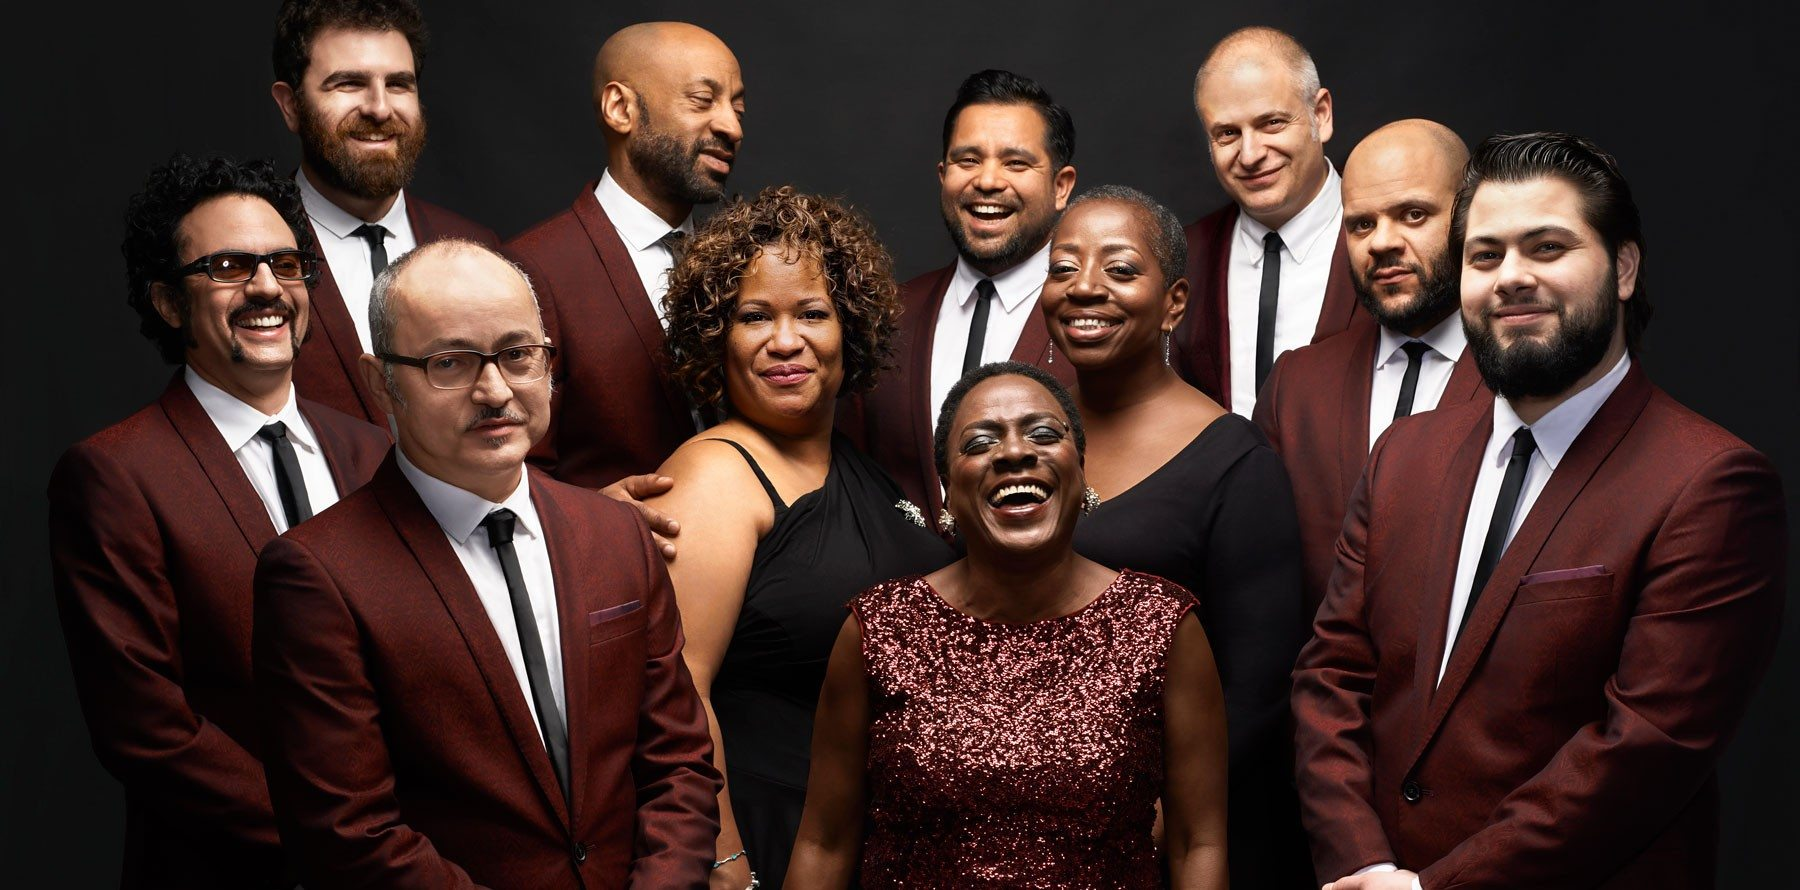 All that jazz … and a lot more at this year's TD Jazz Festival